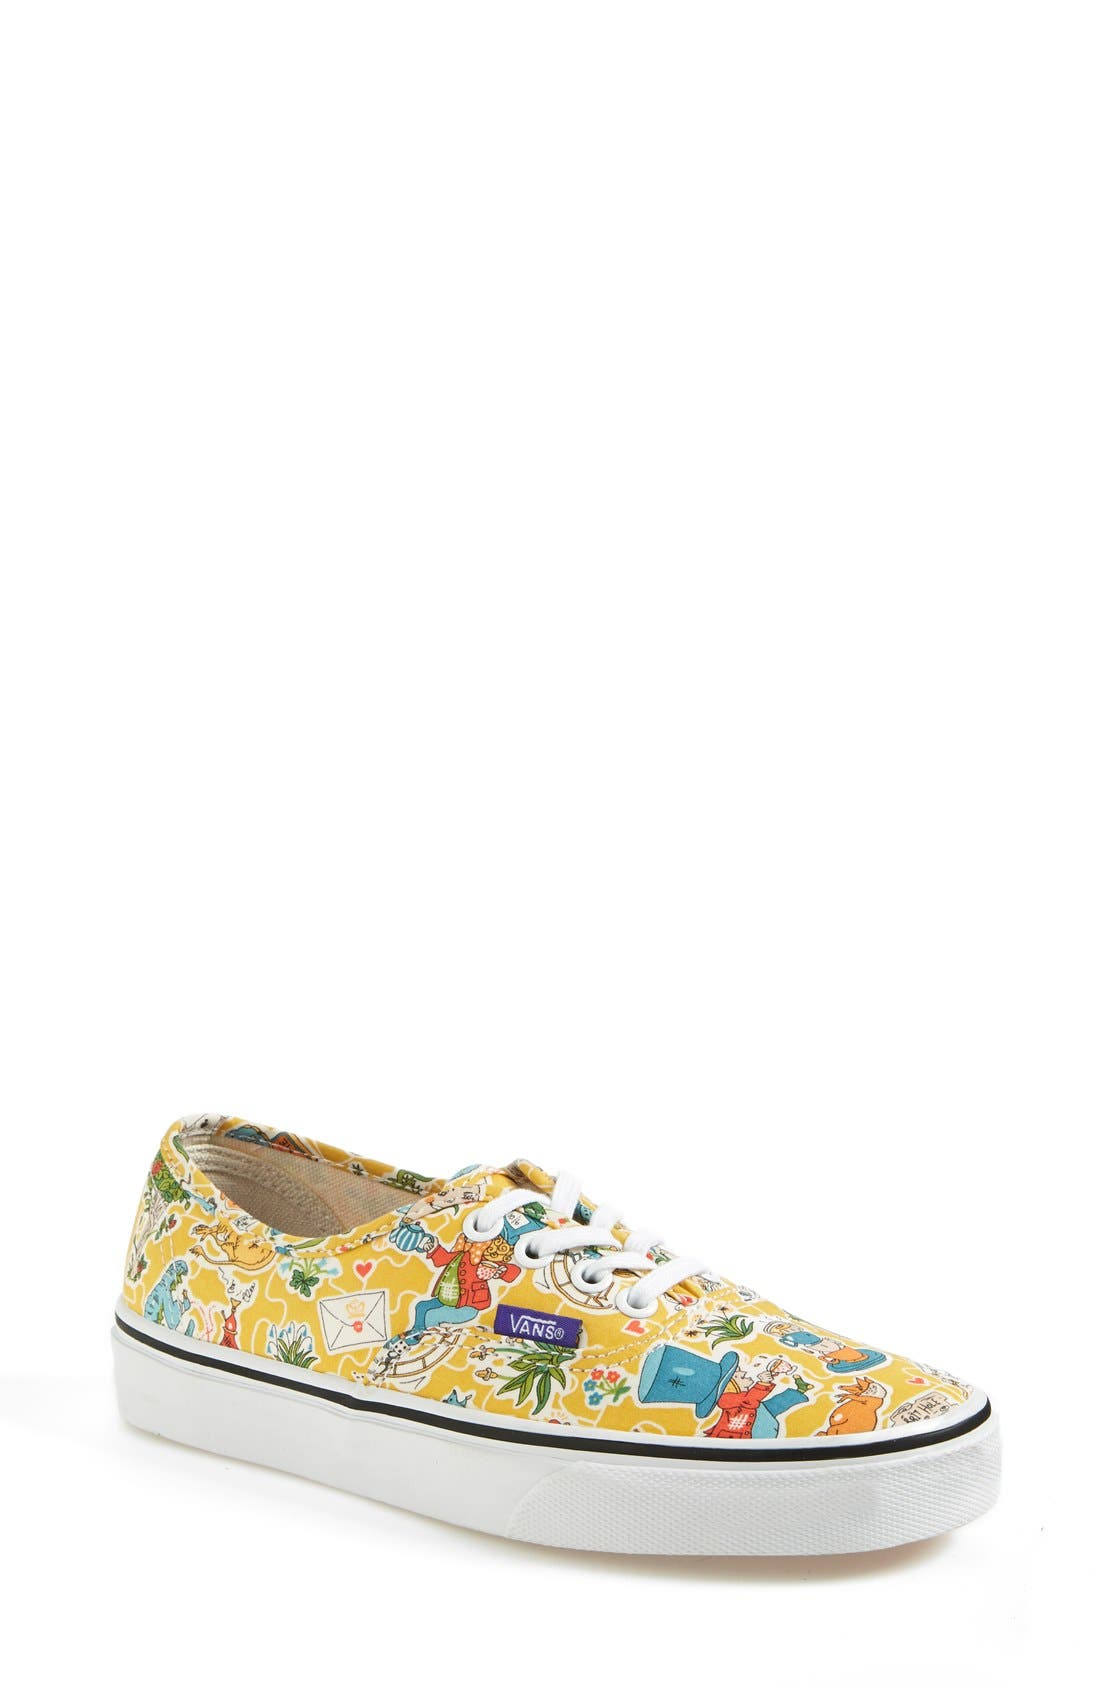 Alternate Image 1 Selected - Vans 'Authentic - Liberty Era' Sneaker (Women)